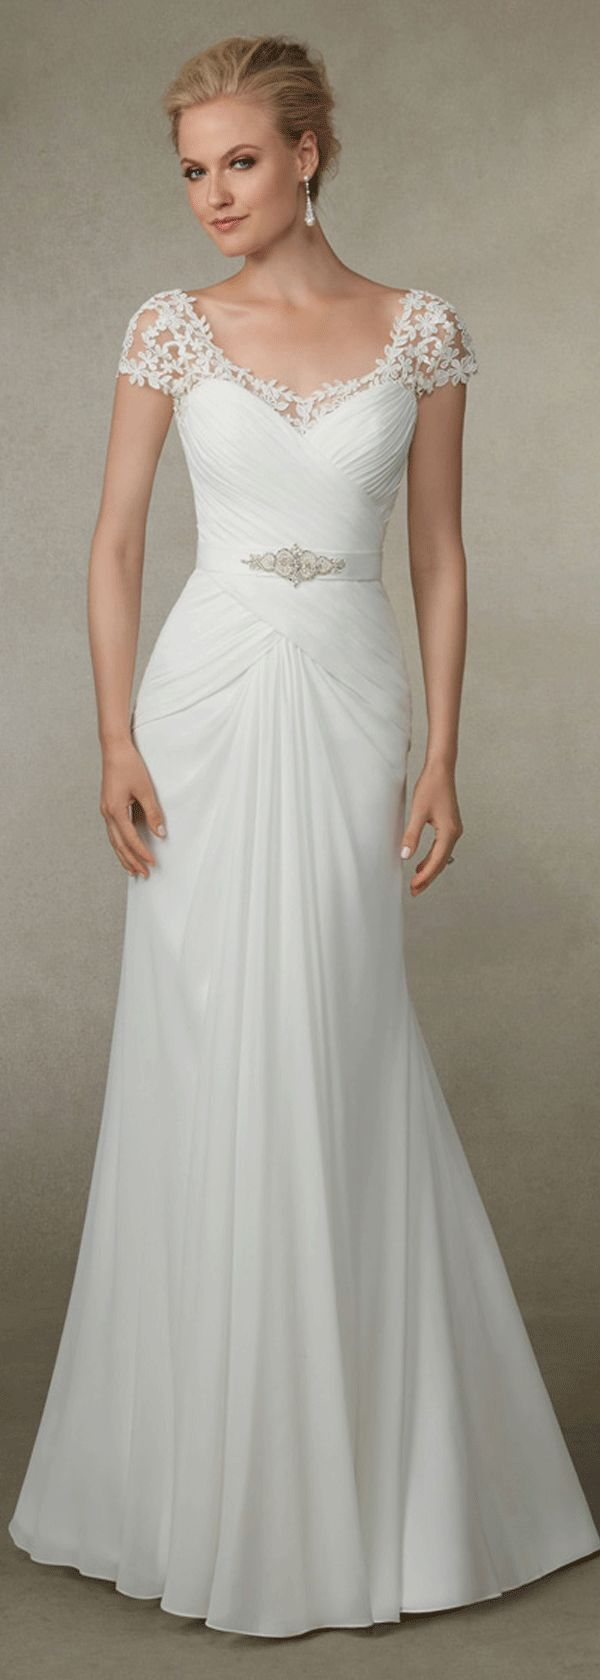 Elegant chiffon scoop neckline sheath wedding dress with beadings; It has an undetachable sash with shining beadings and rhinestones.